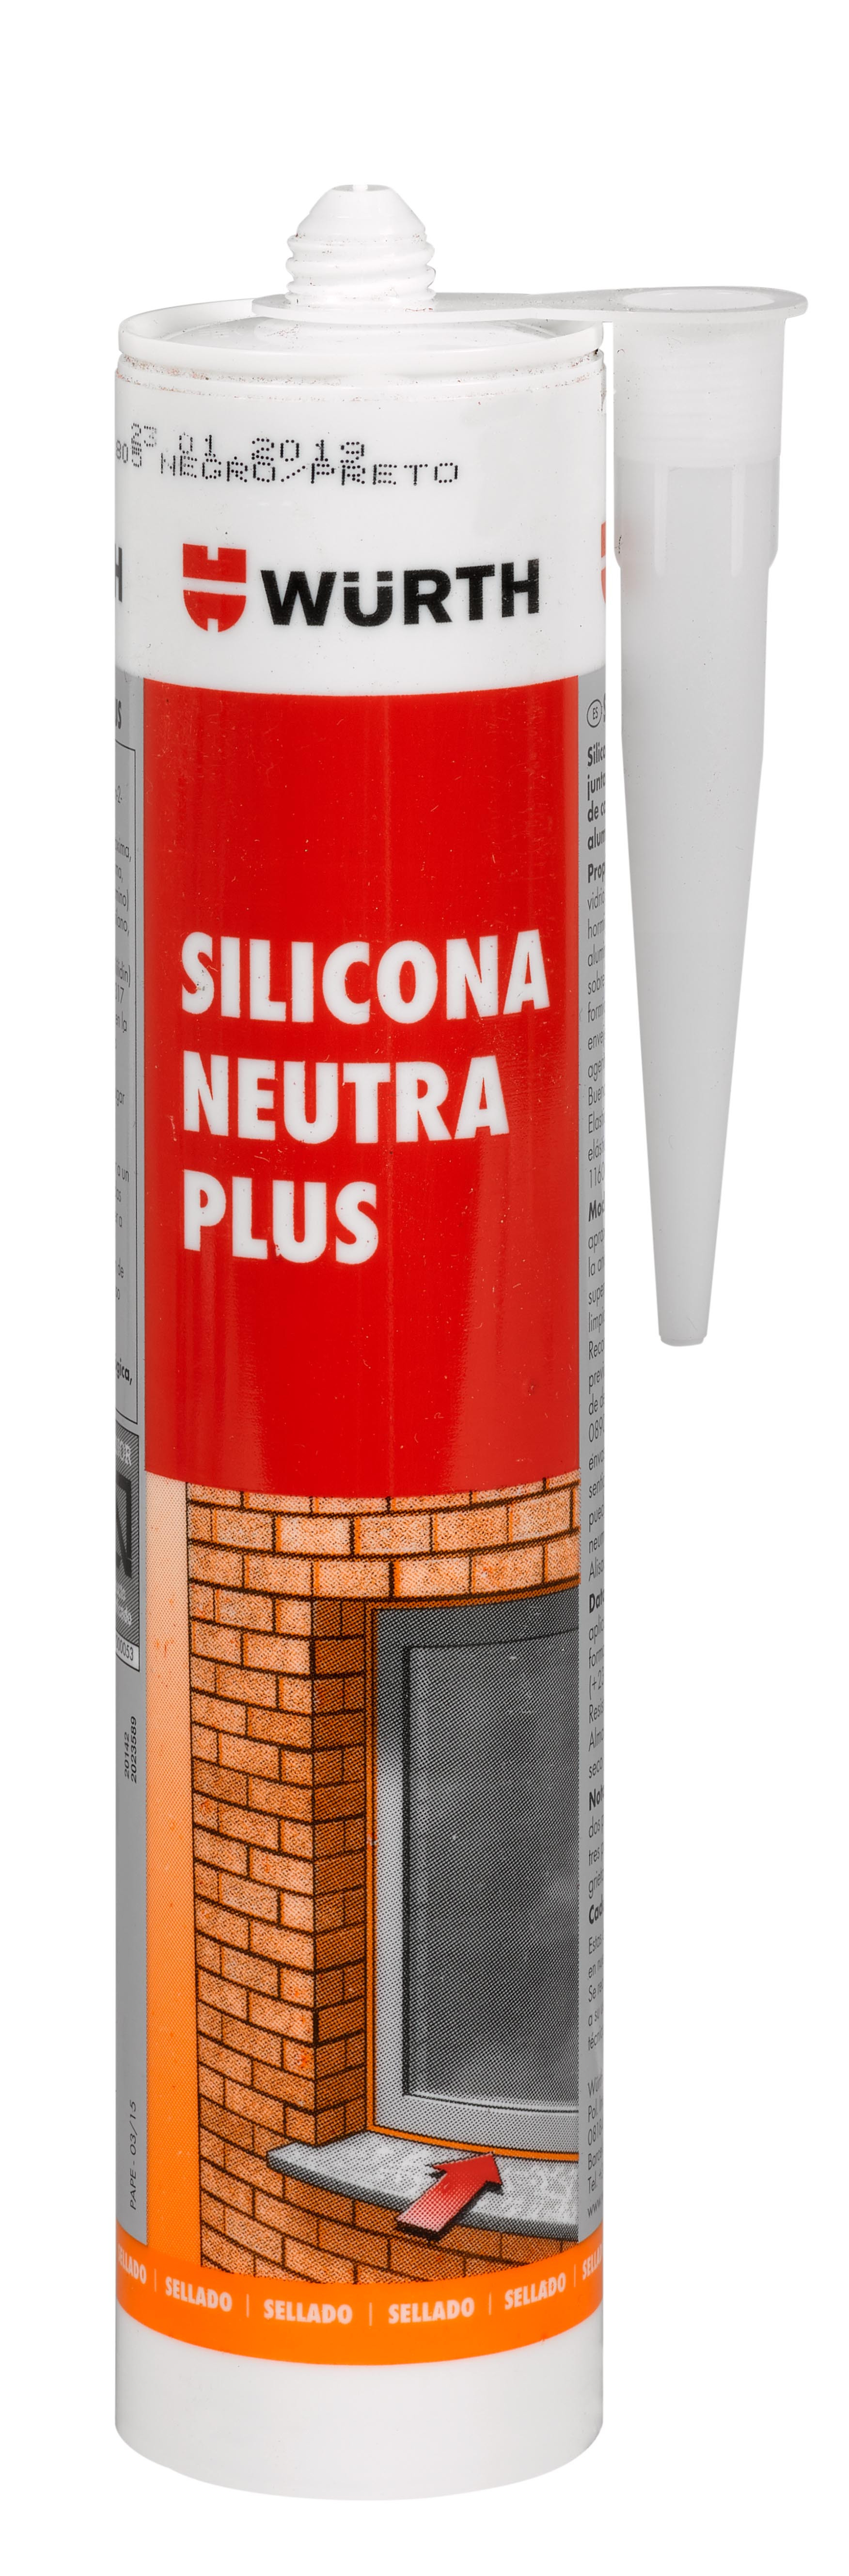 SILICONA NEUTRA PLUS GRISRAL7016 310ML